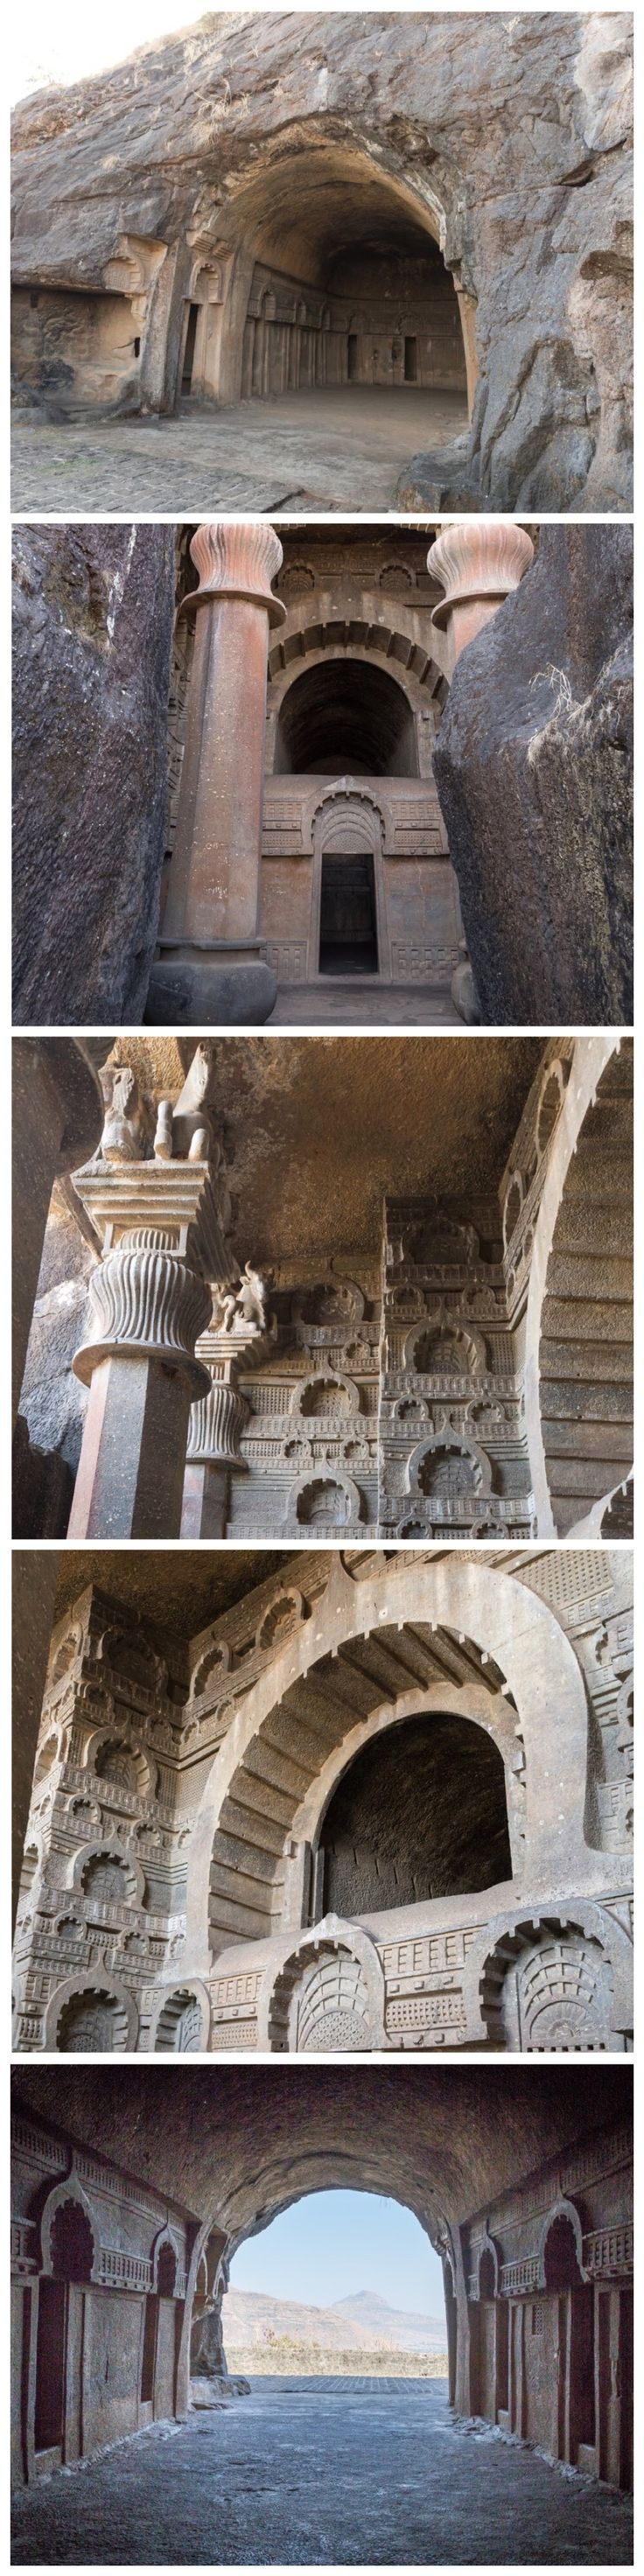 Bedse Caves, India. These amazing rock-cut caves are carved to perfection. They were meticulously carved by Indians. Their perfection challenges our imagination. The tolerances and dimensions show an advanced understanding of mathematics, design, planning and technology.